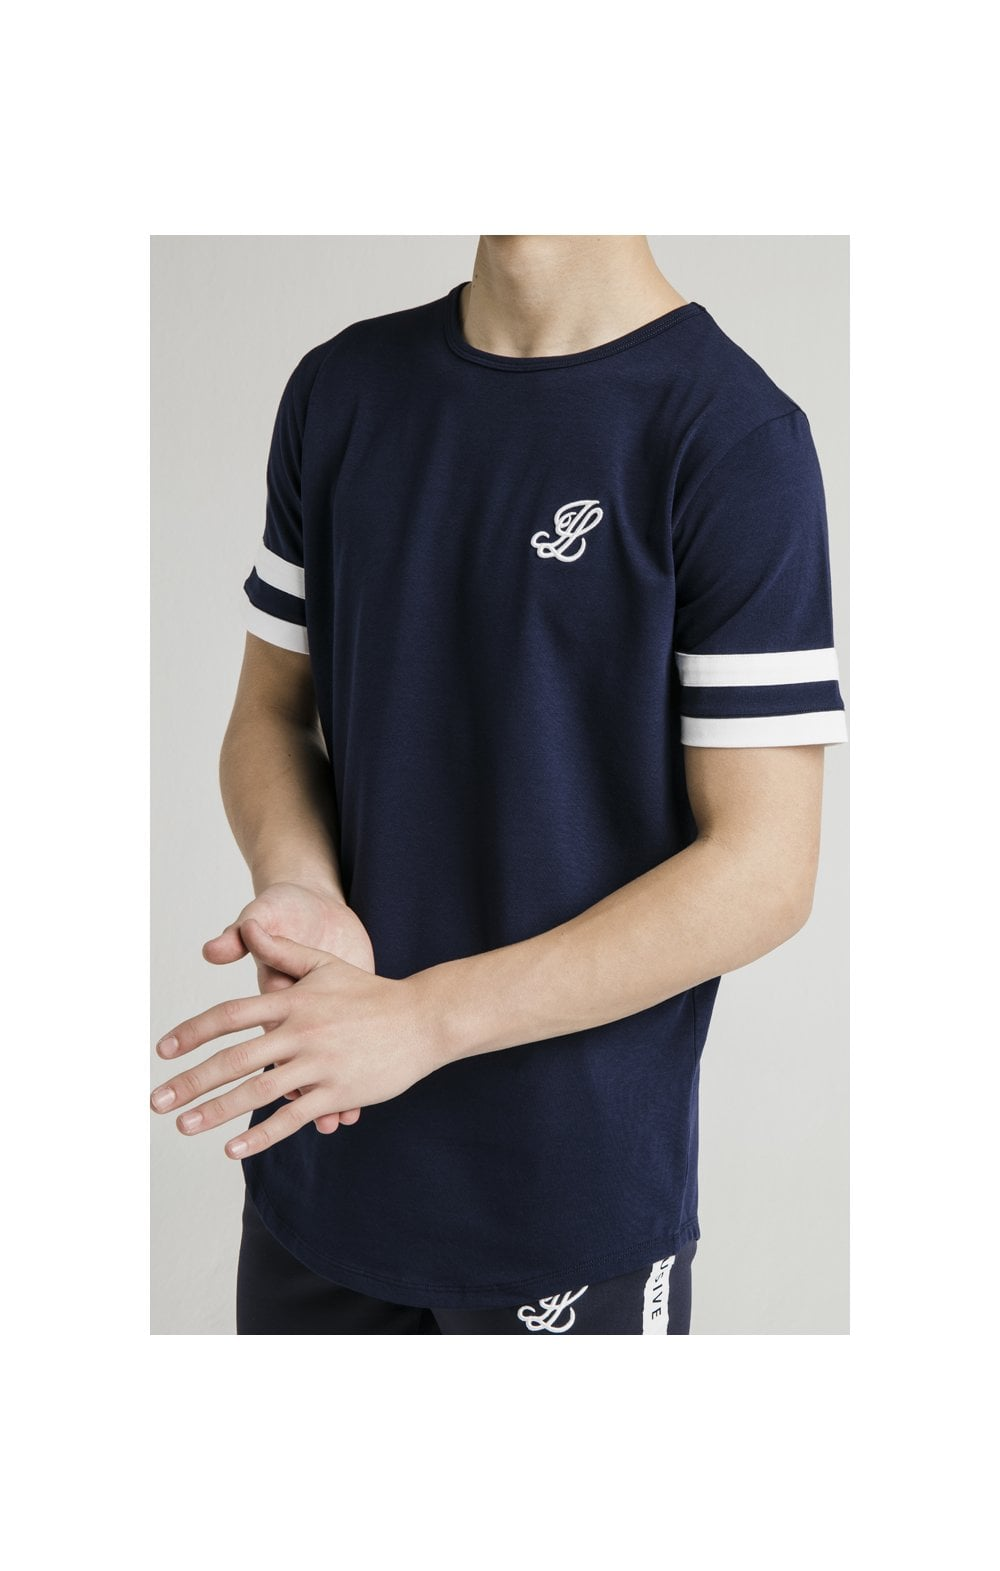 Load image into Gallery viewer, Illusive London Tournament Tee - Navy & White